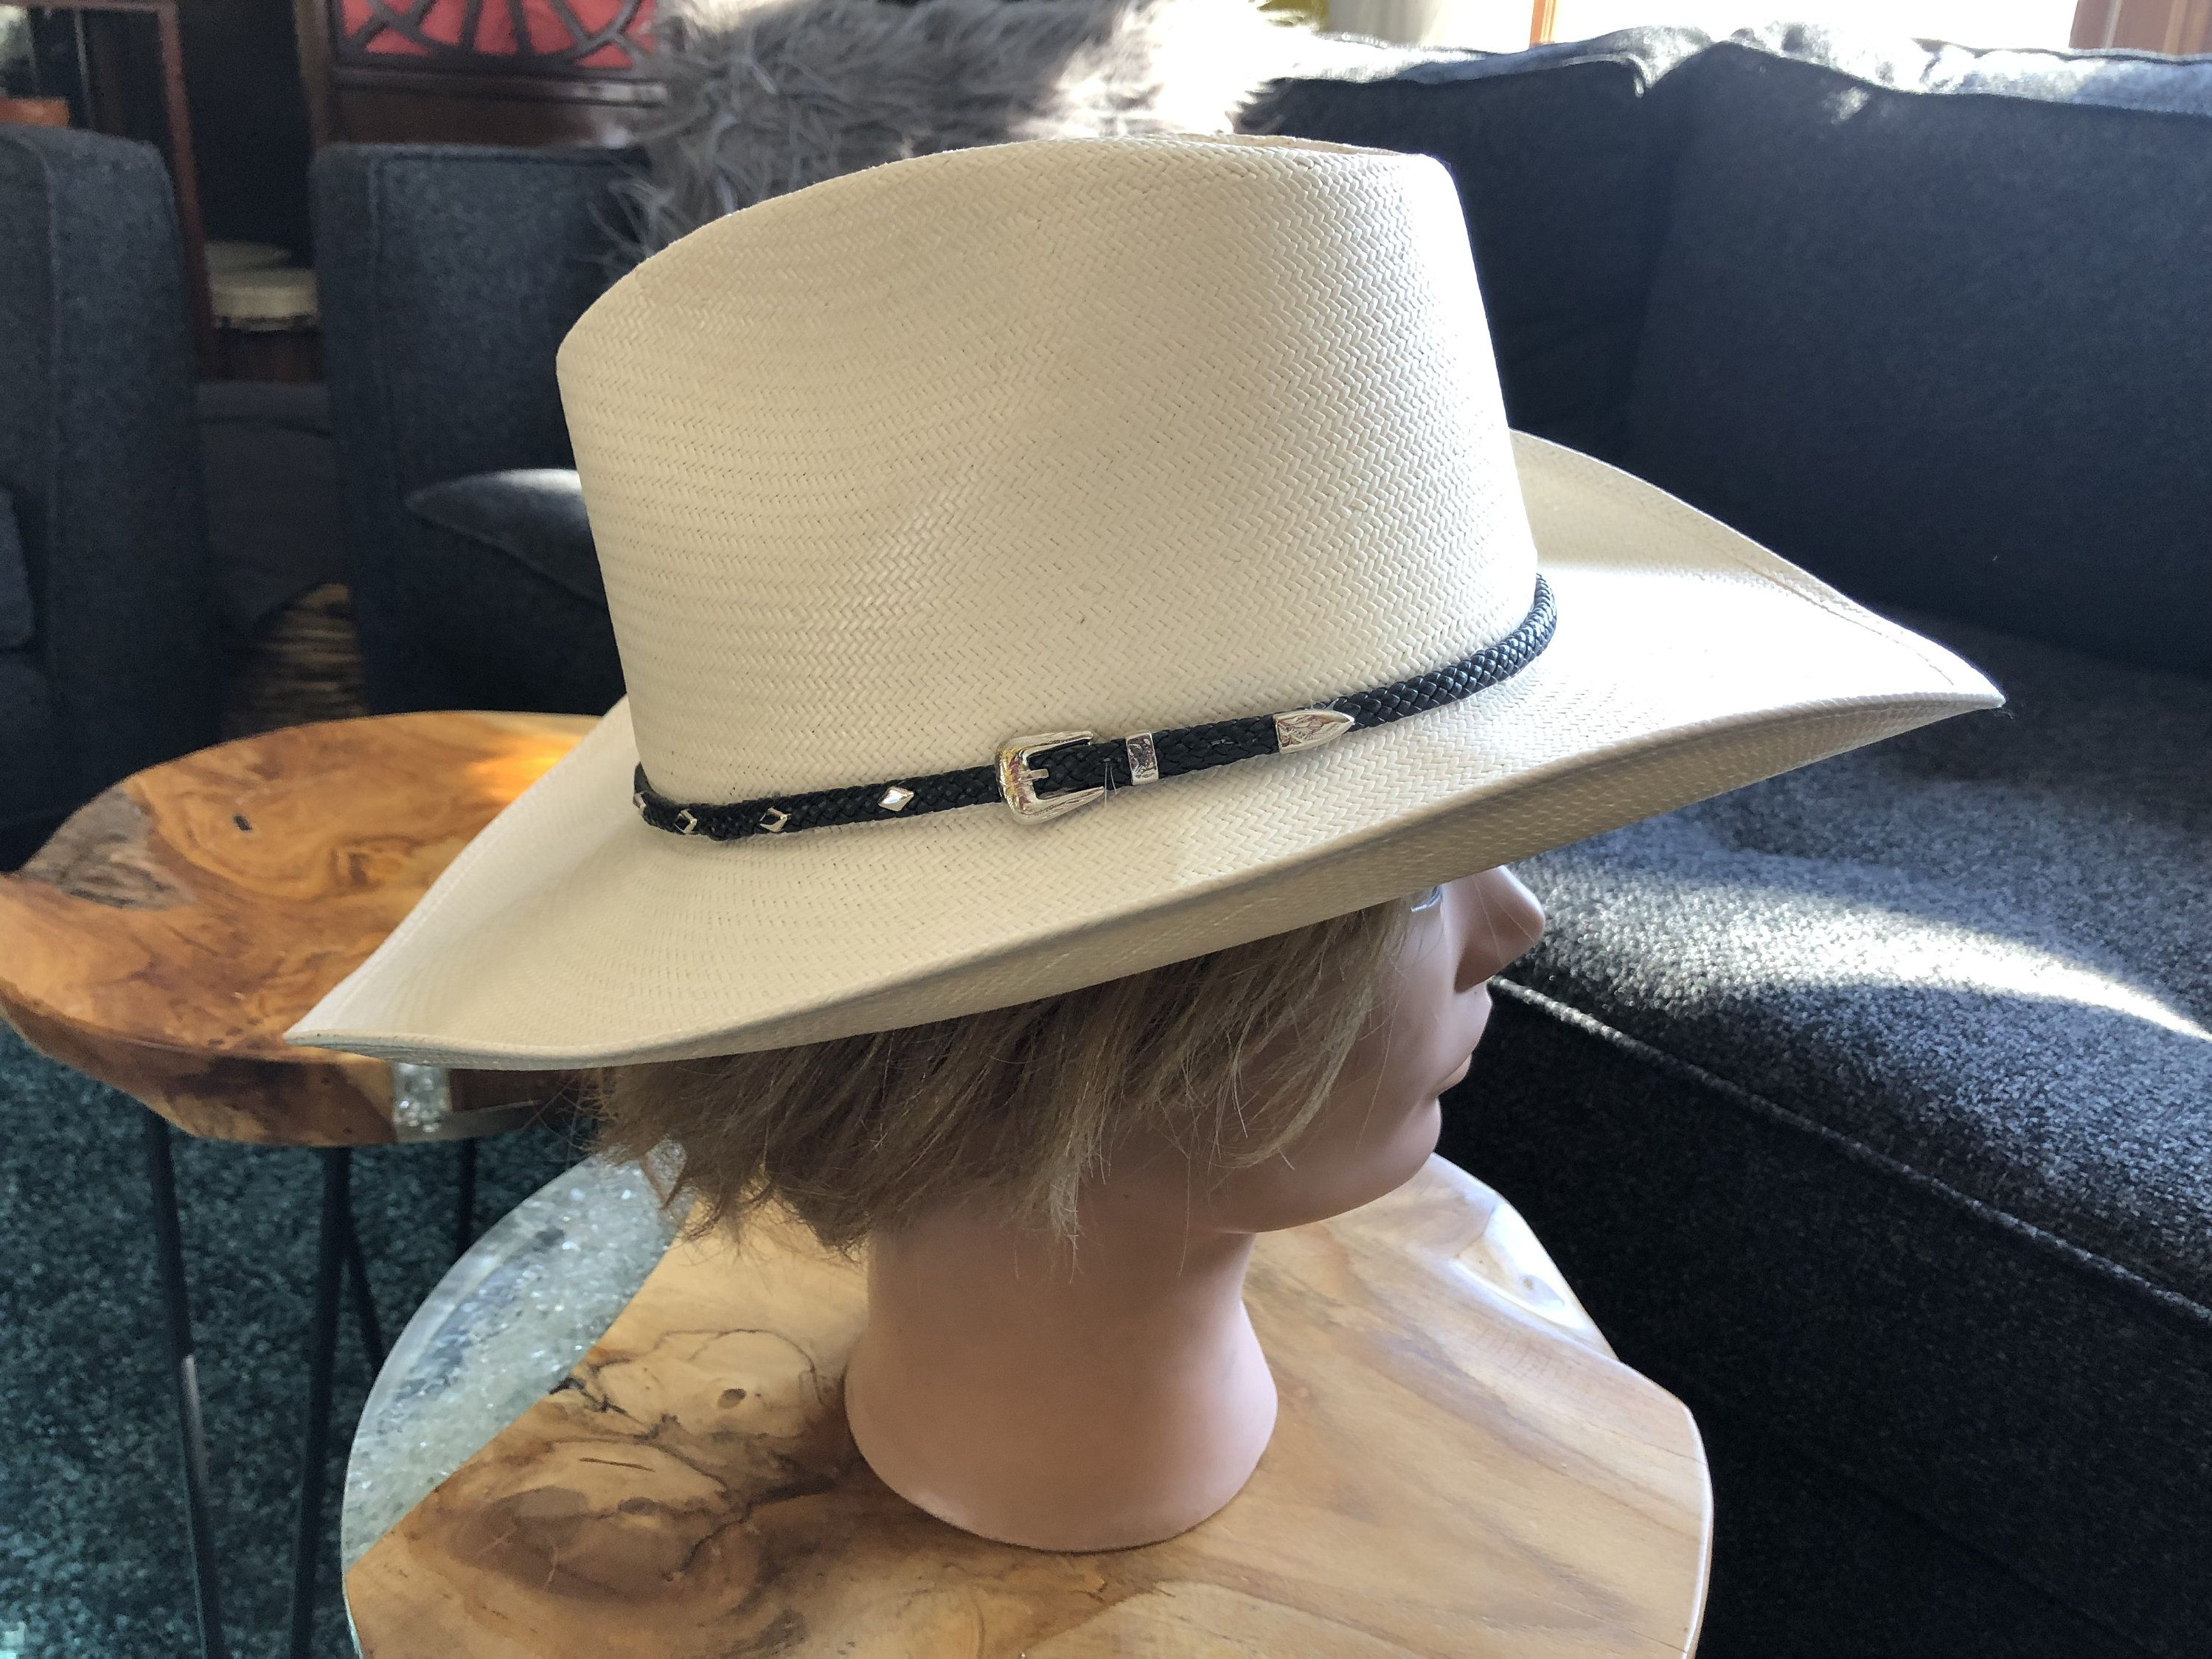 Vintage Stetson Cowboy Western Hat Authentic X S Genuine Shantung Panama Made In Usa Size 7 Cattleman Crown Straw Leather Band Silver Accent Western Cowboy Hats Western Hats Leather Band